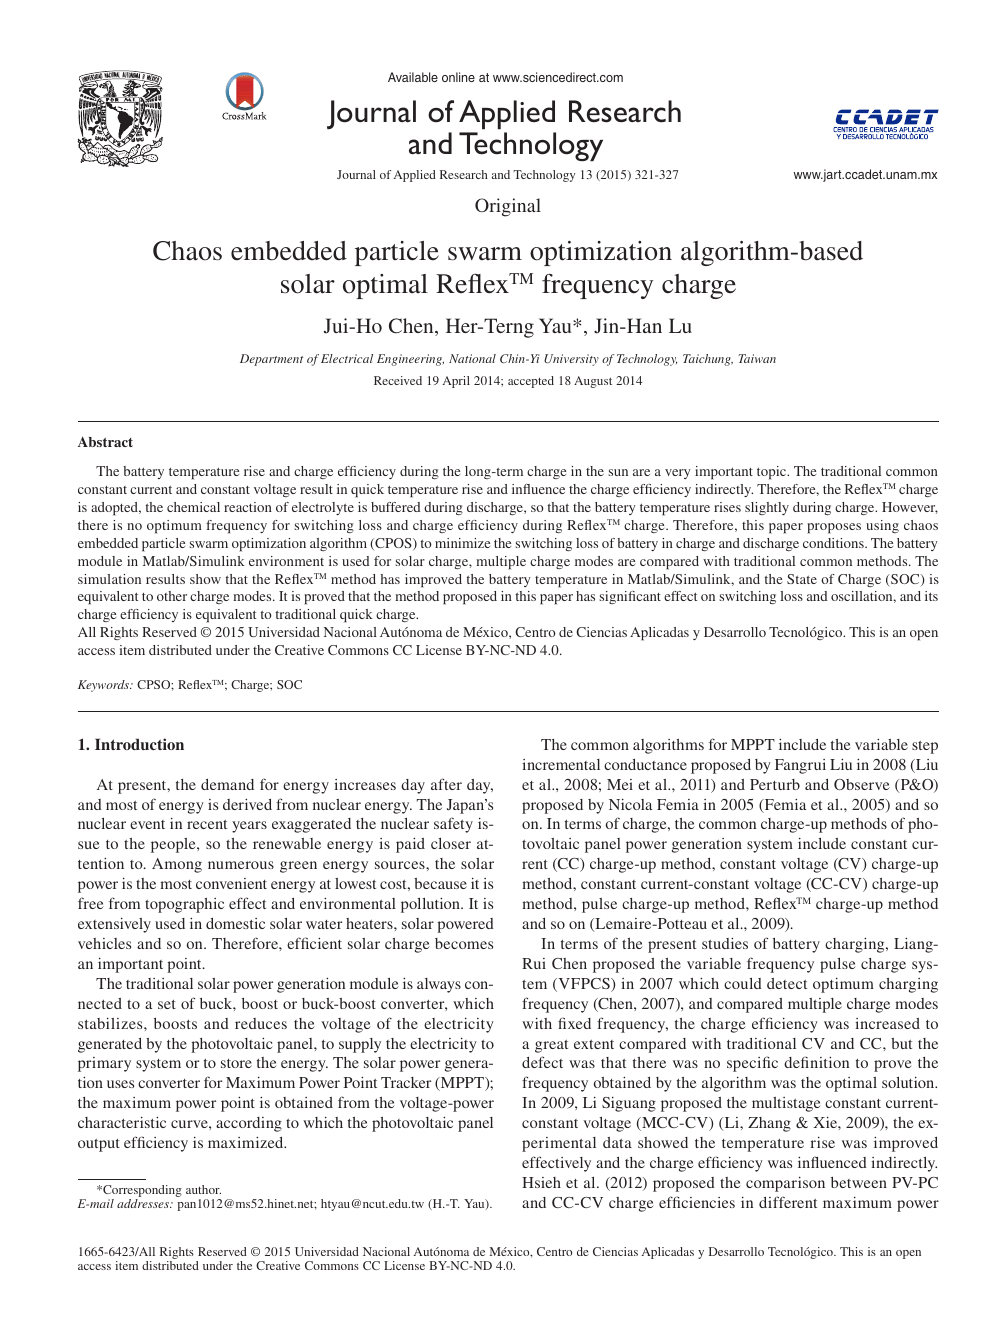 Chaos embedded particle swarm optimization algorithm-based solar